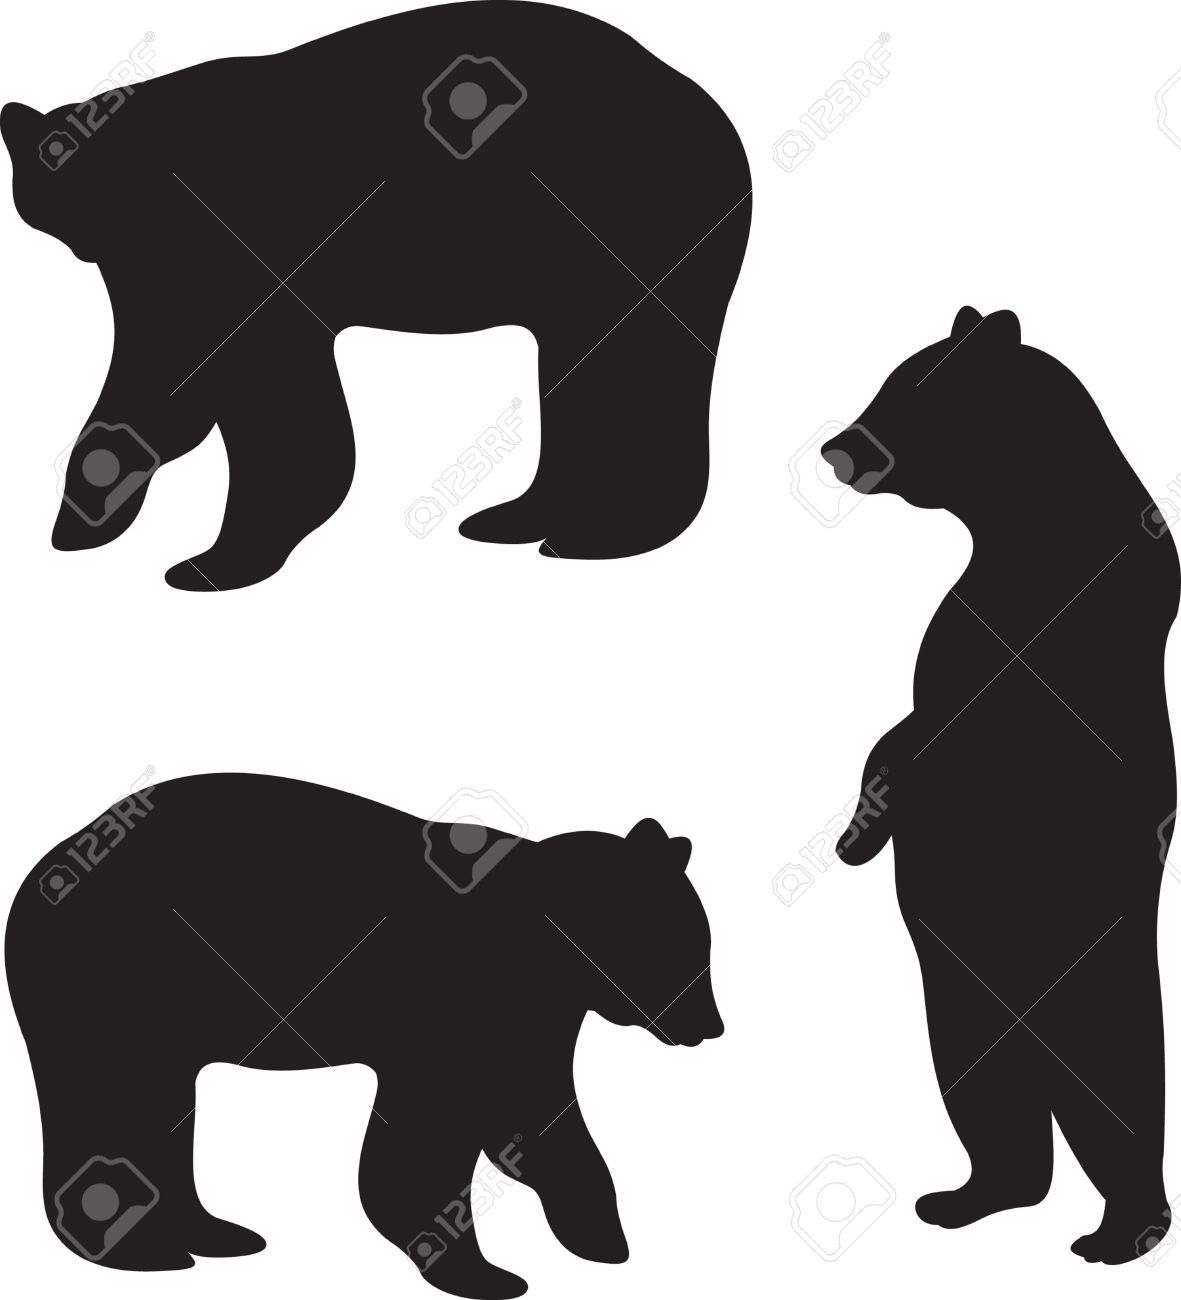 1181x1300 Roaring Bear Standing Graphic